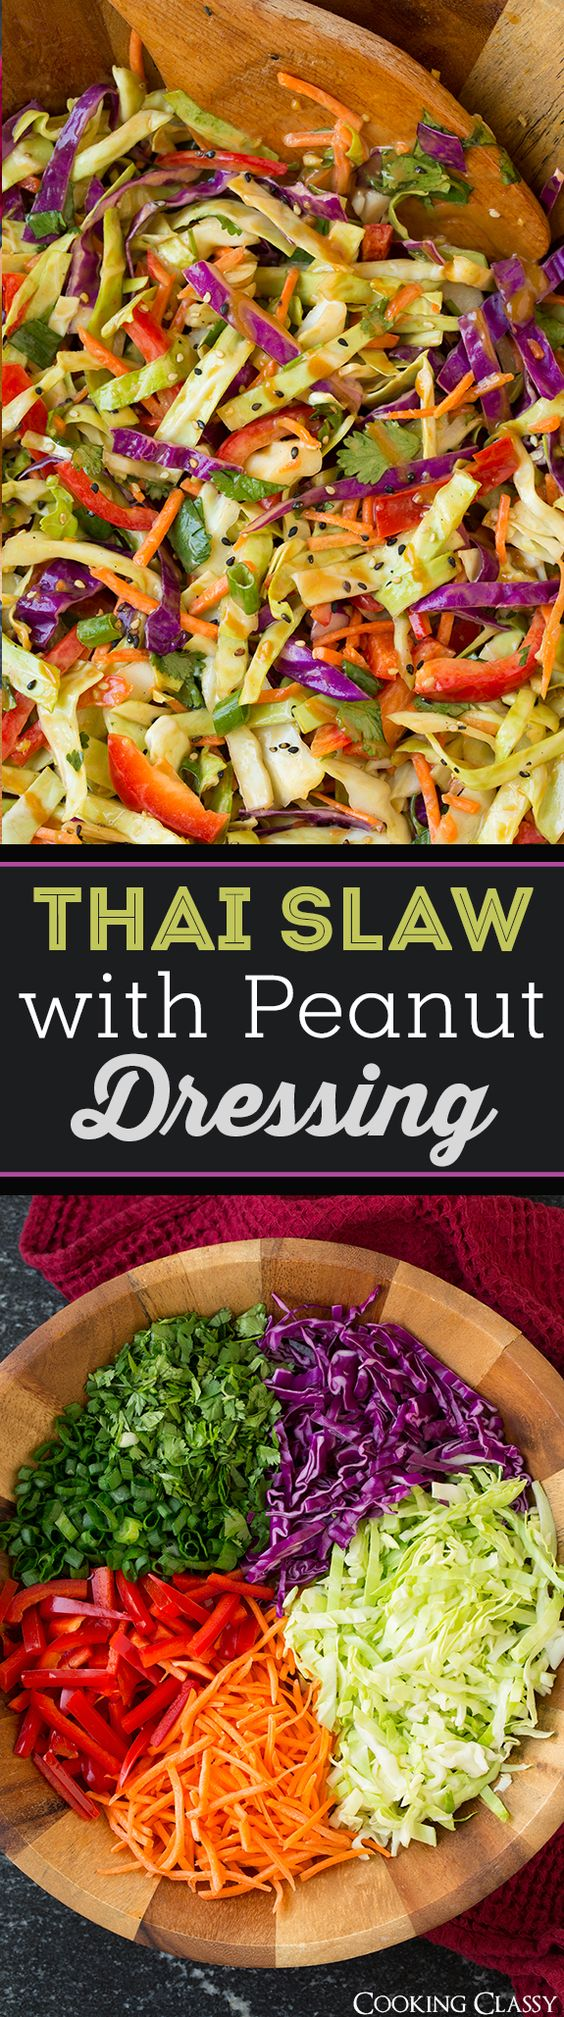 Thai Slaw with Peanut Dressing Salad Recipe via Cooking Classy - easy ...